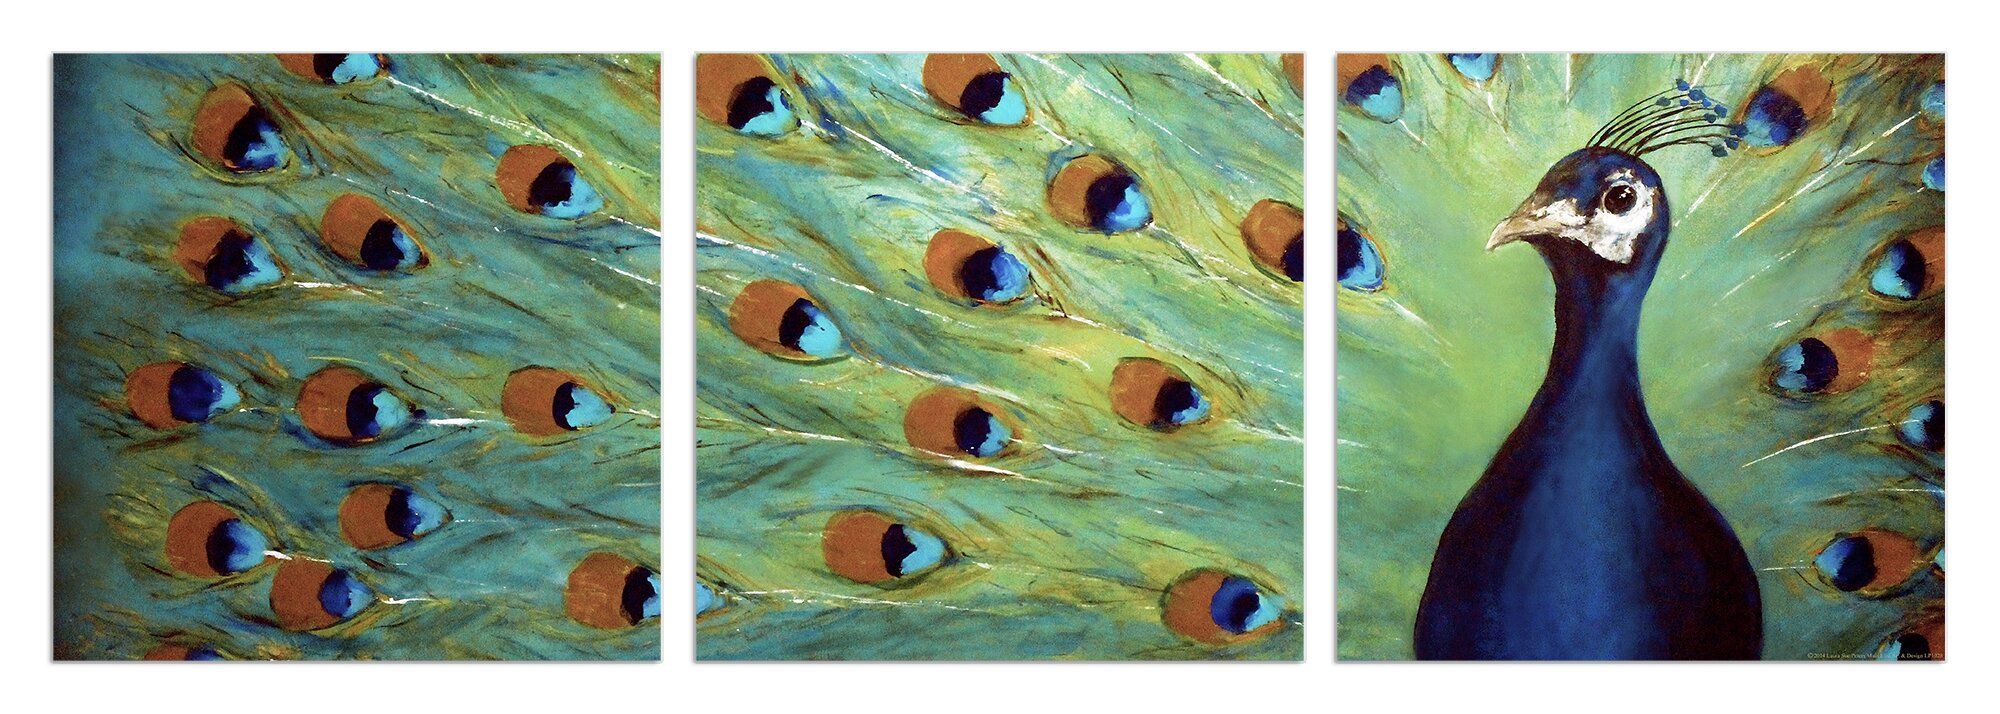 Charmant Prized Peacock 3 Piece Triptych Canvas Wall Art Set